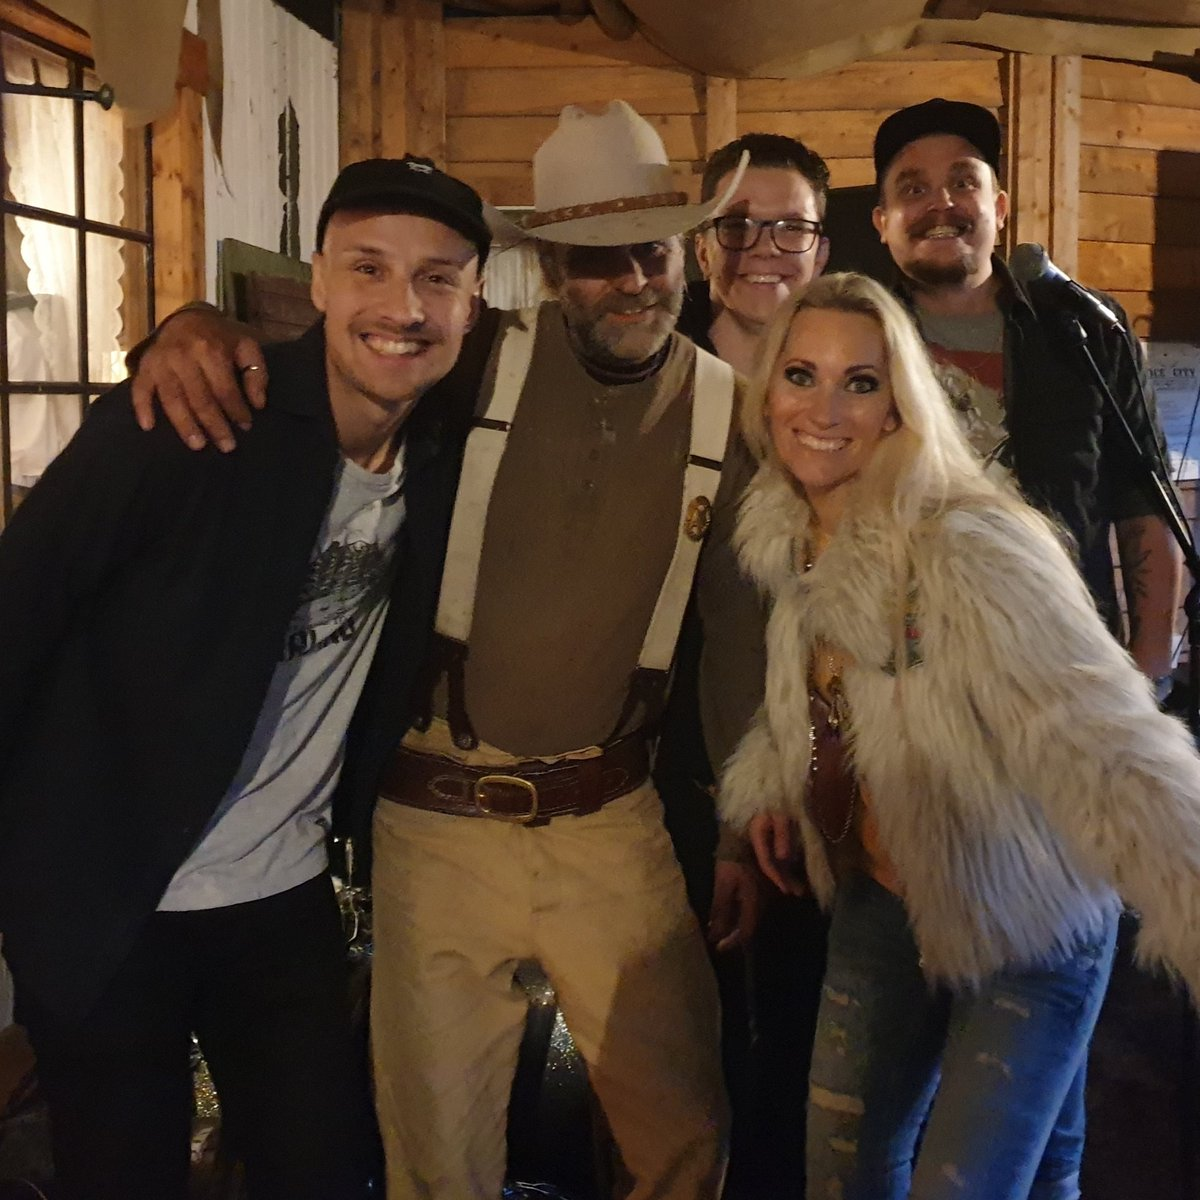 Thank you @jocecity for a great night at your venue!  Tonights show start at 8 pm#countrymusic #moderncountry #ellinorspringstrike #livemusic #jocecity #tour #theband #westerntown #sweden  @anton90gustafssonpic.twitter.com/rFa2ODZszV